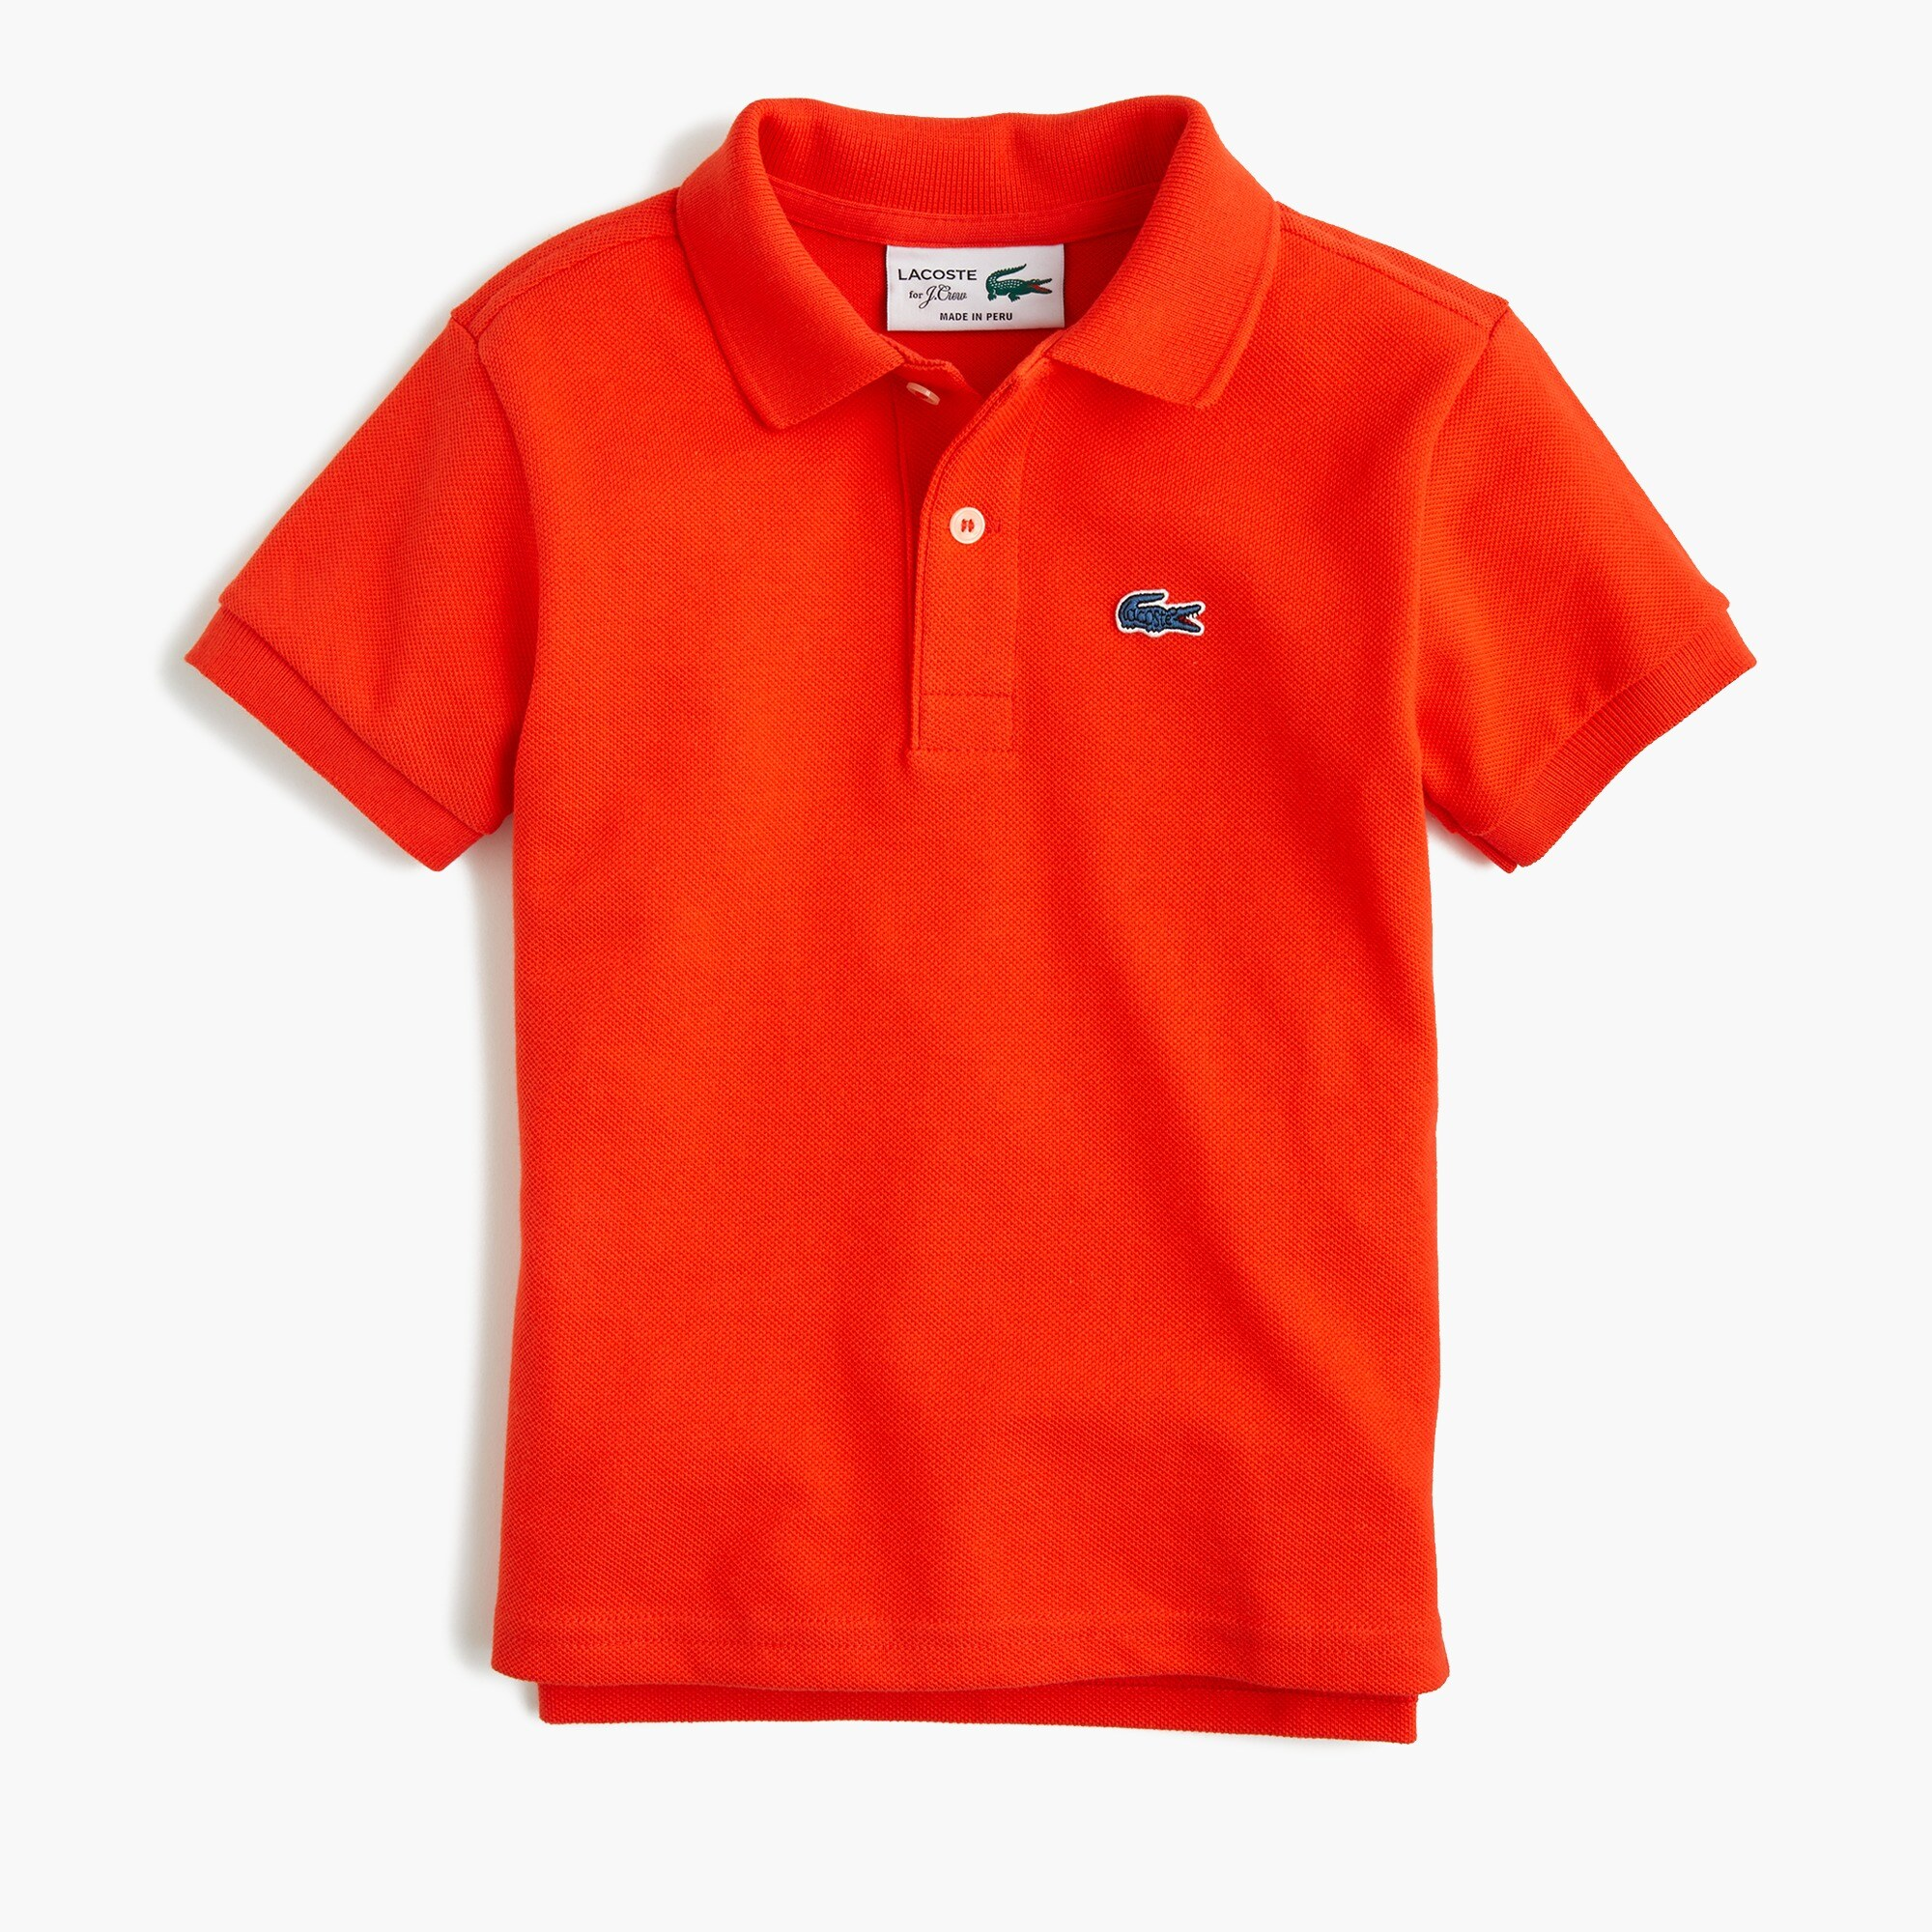 Kids' Lacoste® for J.Crew polo shirt girl j.crew in good company c